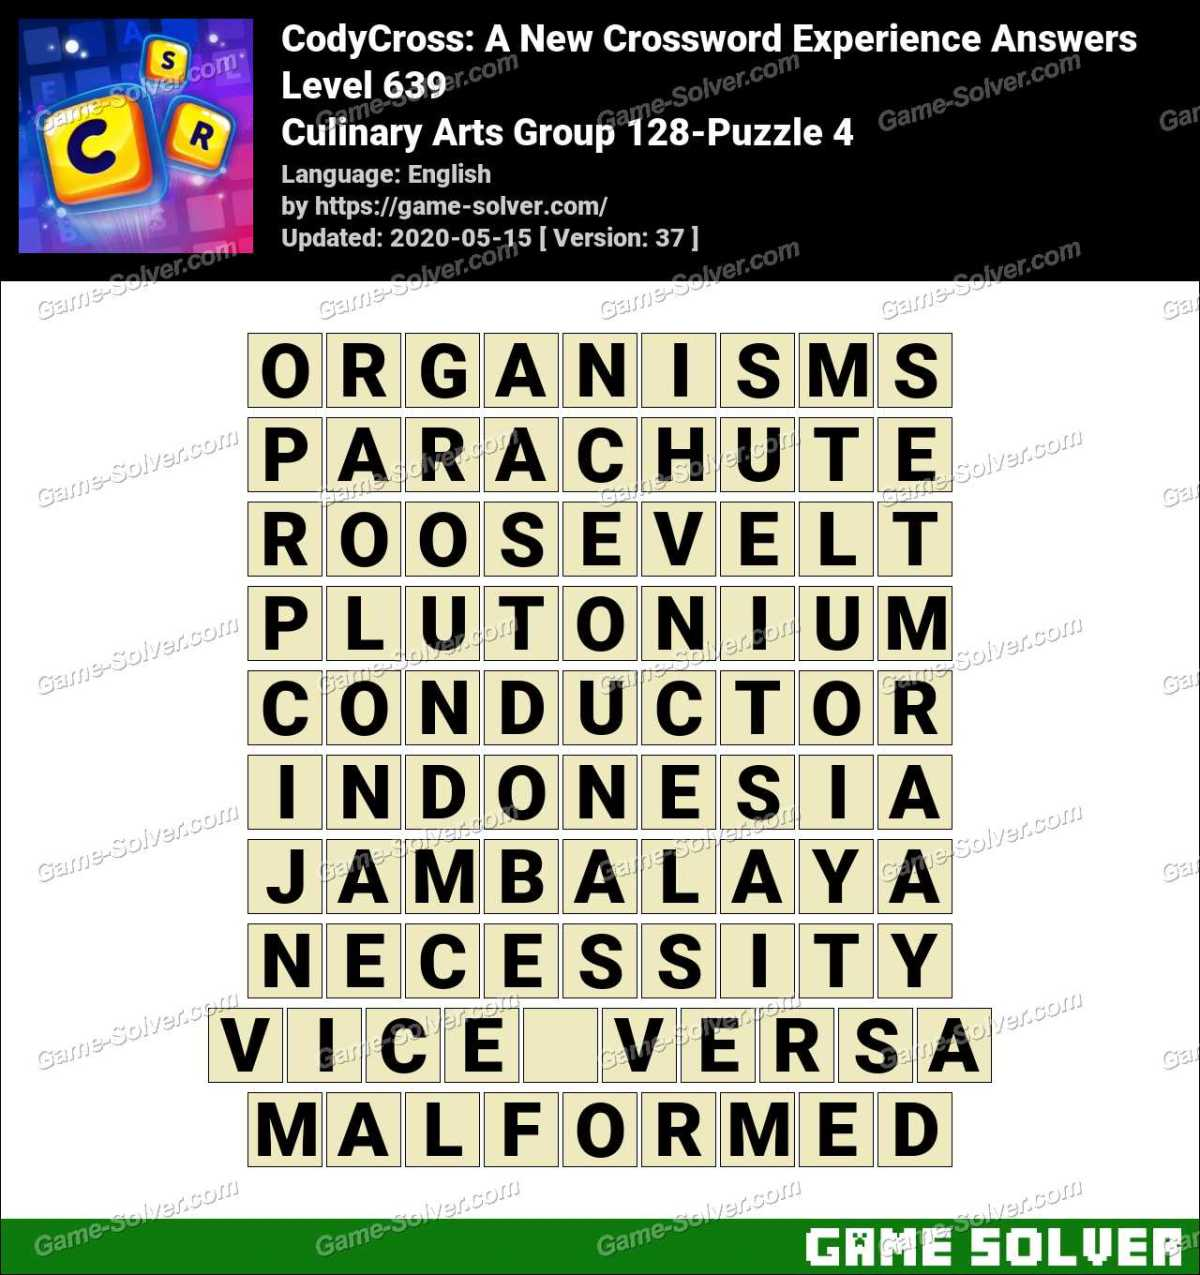 CodyCross Culinary Arts Group 128-Puzzle 4 Answers